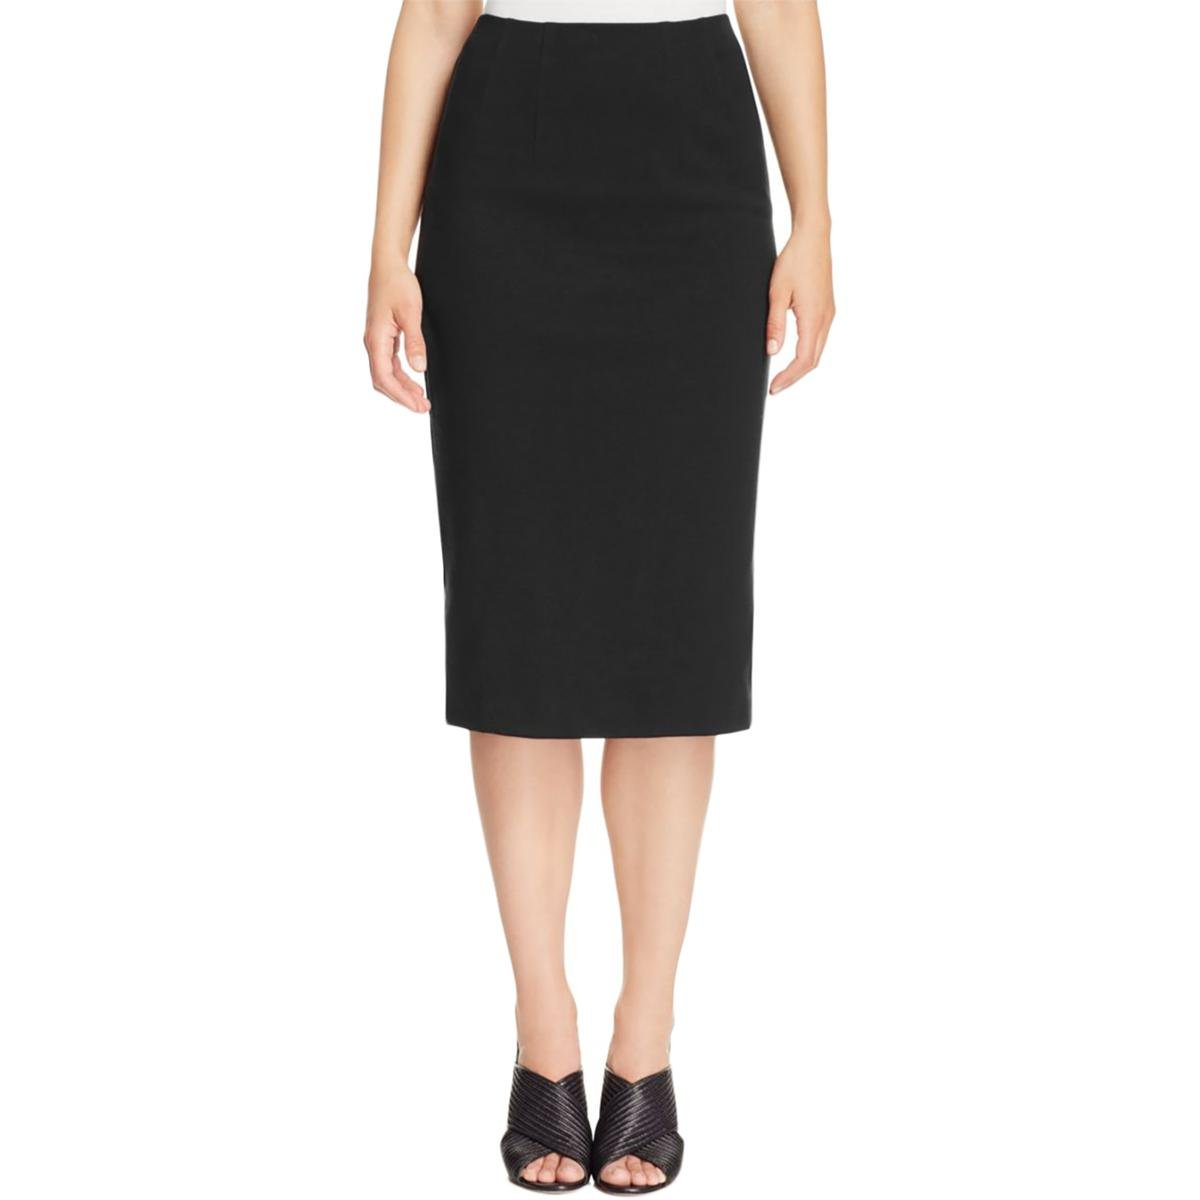 Eileen Fisher Womens Lined Pull On Pencil Skirt Black XS